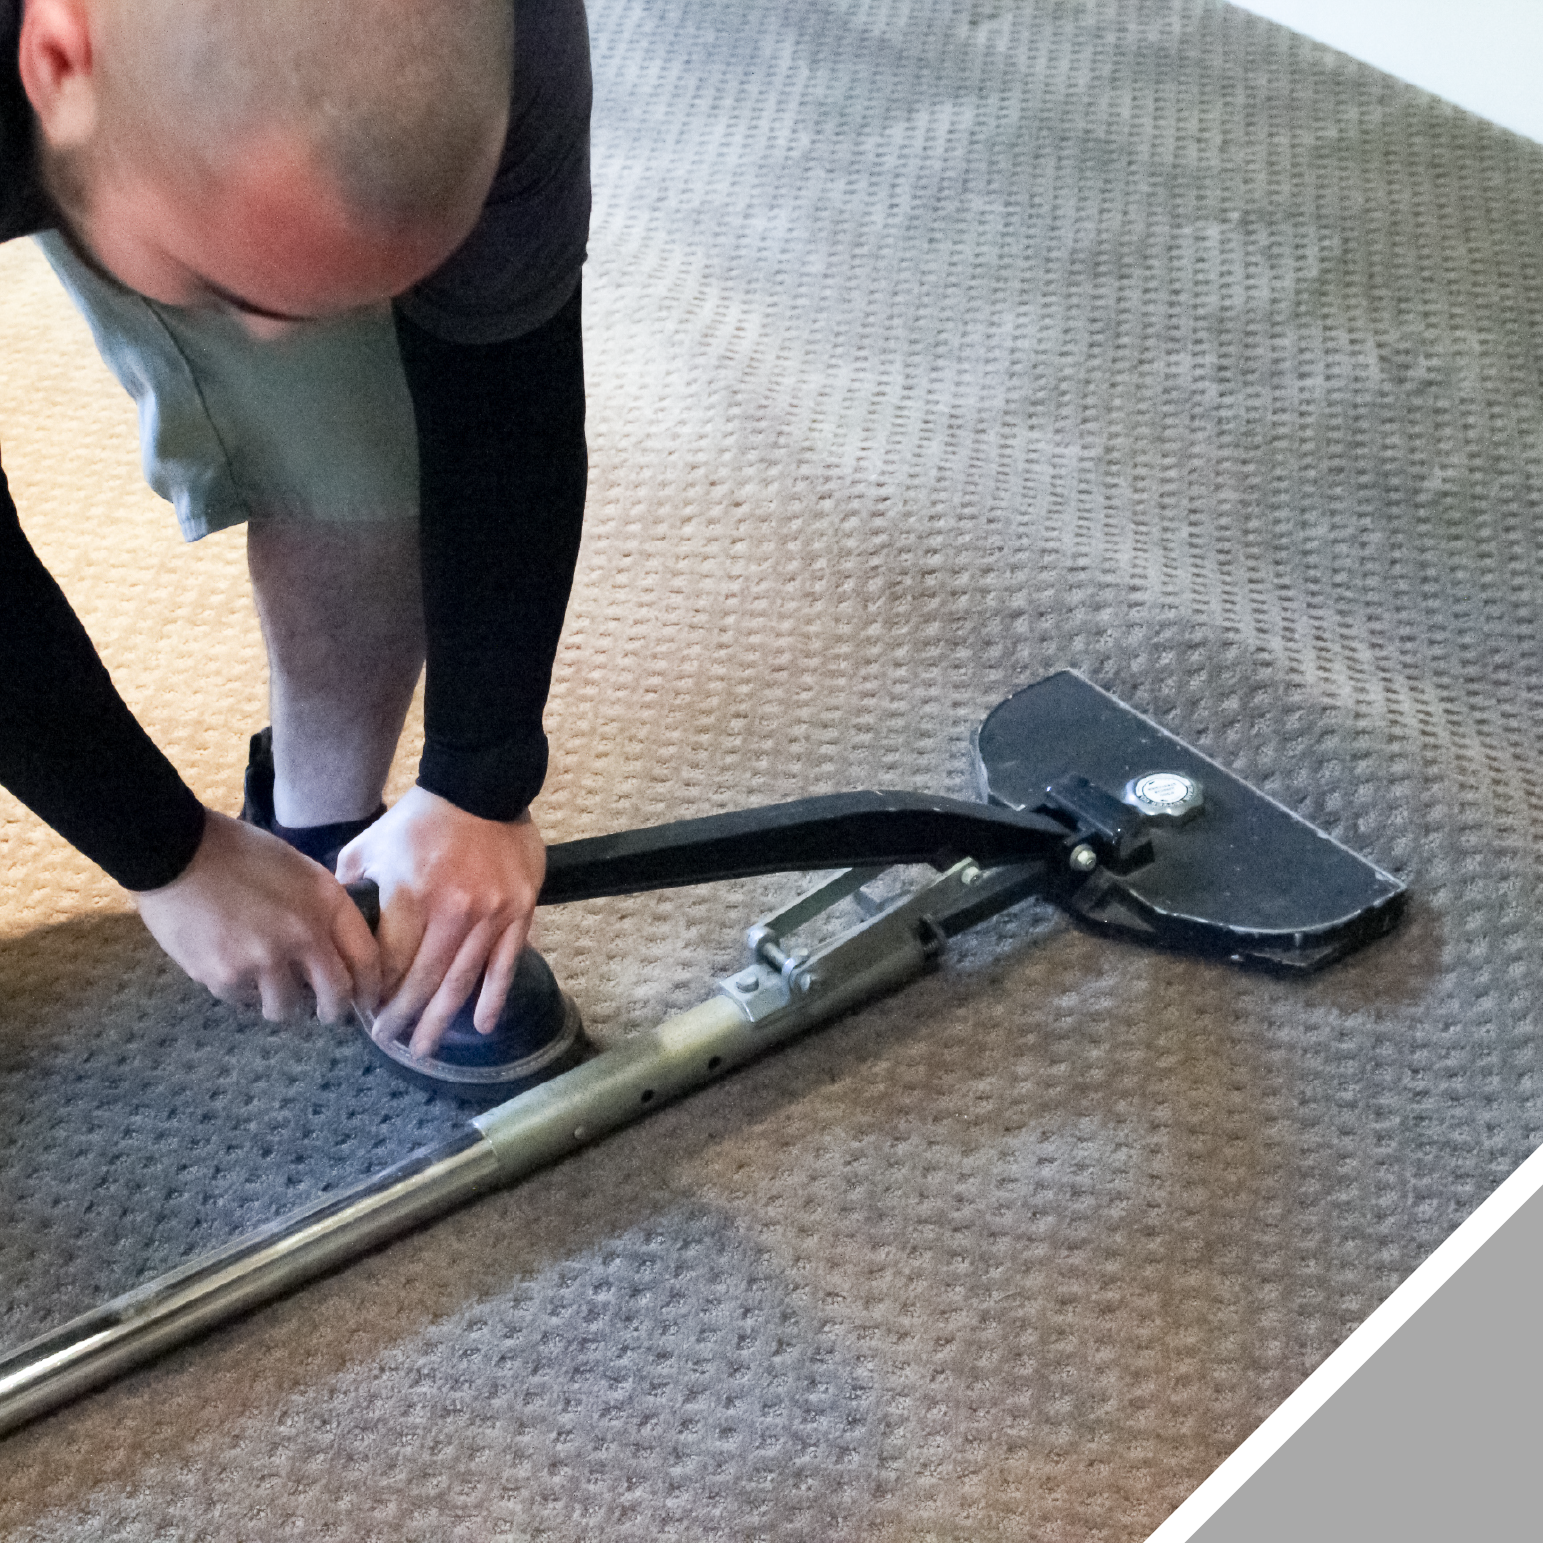 Wrinkles are pushed out from the center of the room to the sides, where the excess carpet can be trimmed off of the edges.